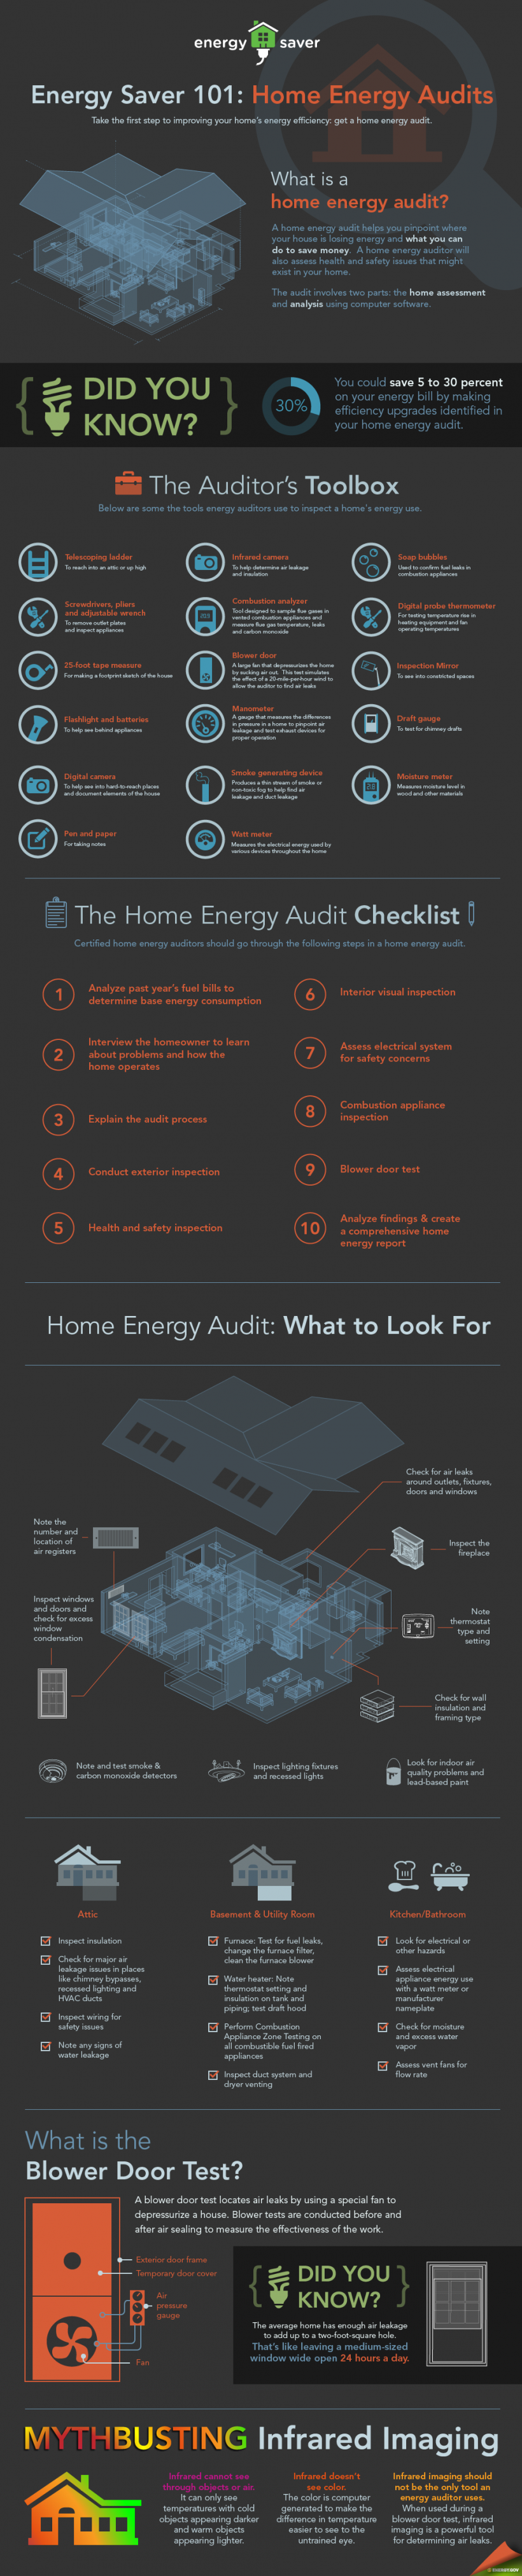 Energy Saver 101 infographic breaks down a home energy audit, explaining what energy auditors look for and the special tools they use to determine where a home is wasting energy. | Infographic by Sarah Gerrity, Energy Department.